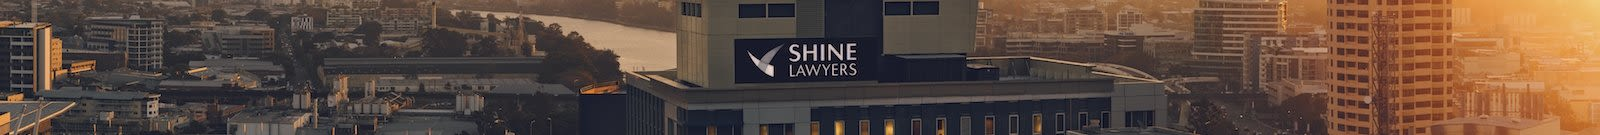 Shine Lawyers | Vietnamese Injury Lawyer | Shine Lawyers